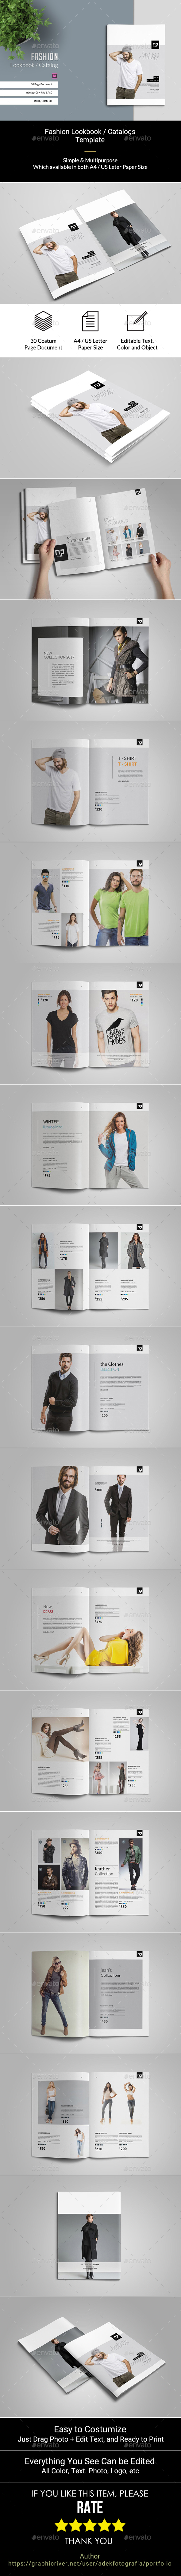 Fashion Product Brochure Catalog - Catalogs Brochures